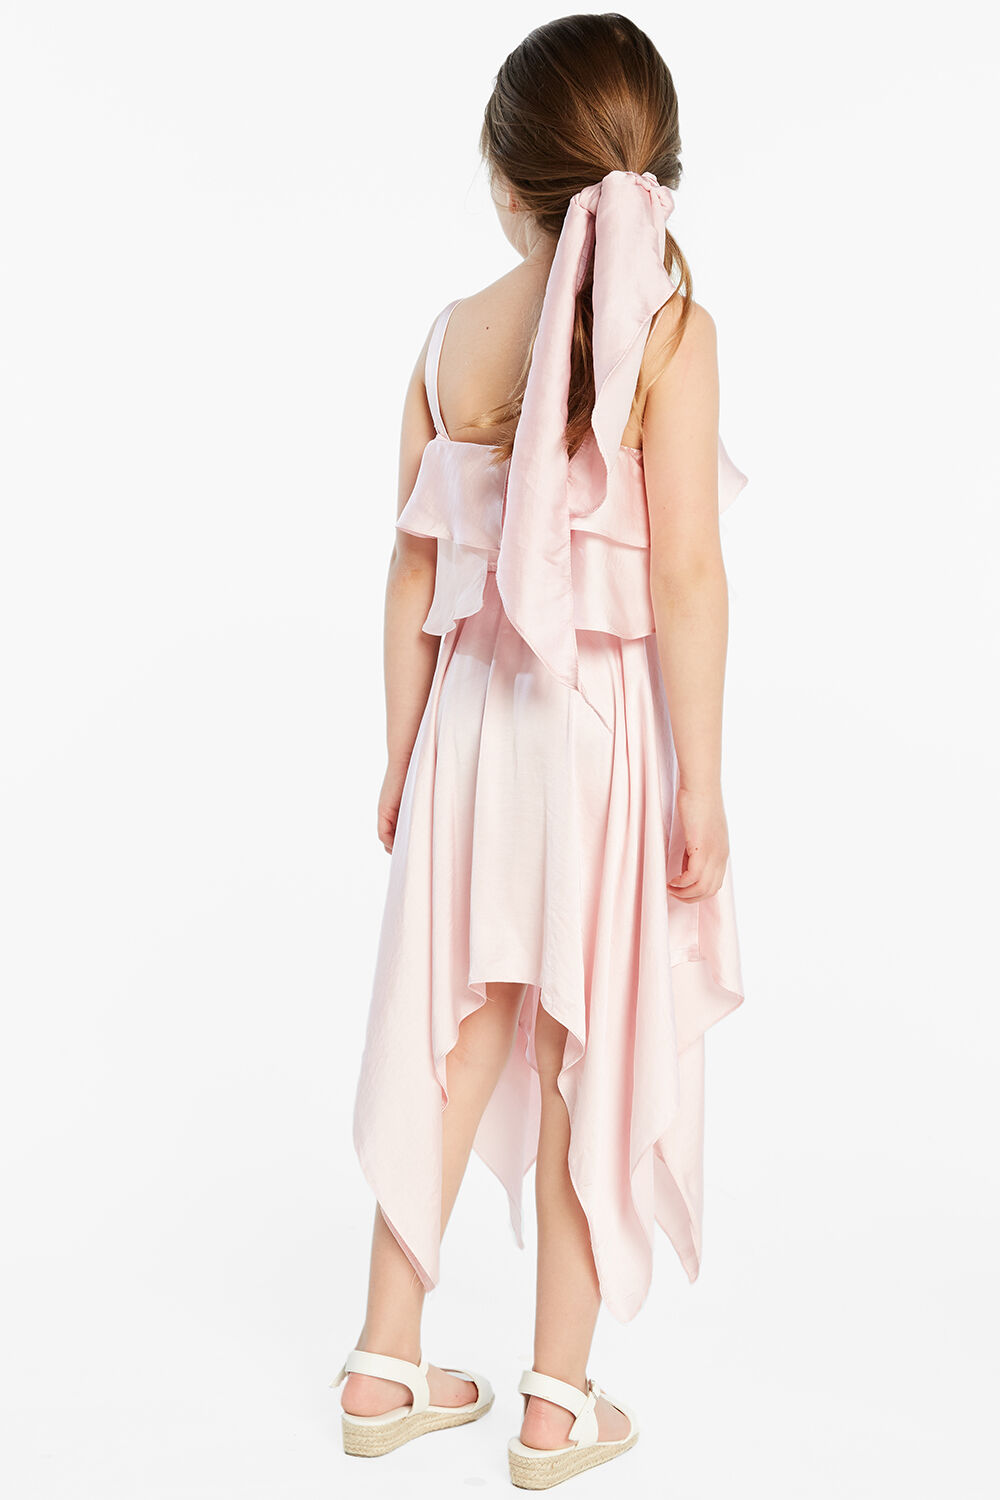 ADDY HANKY DRESS in colour PARFAIT PINK